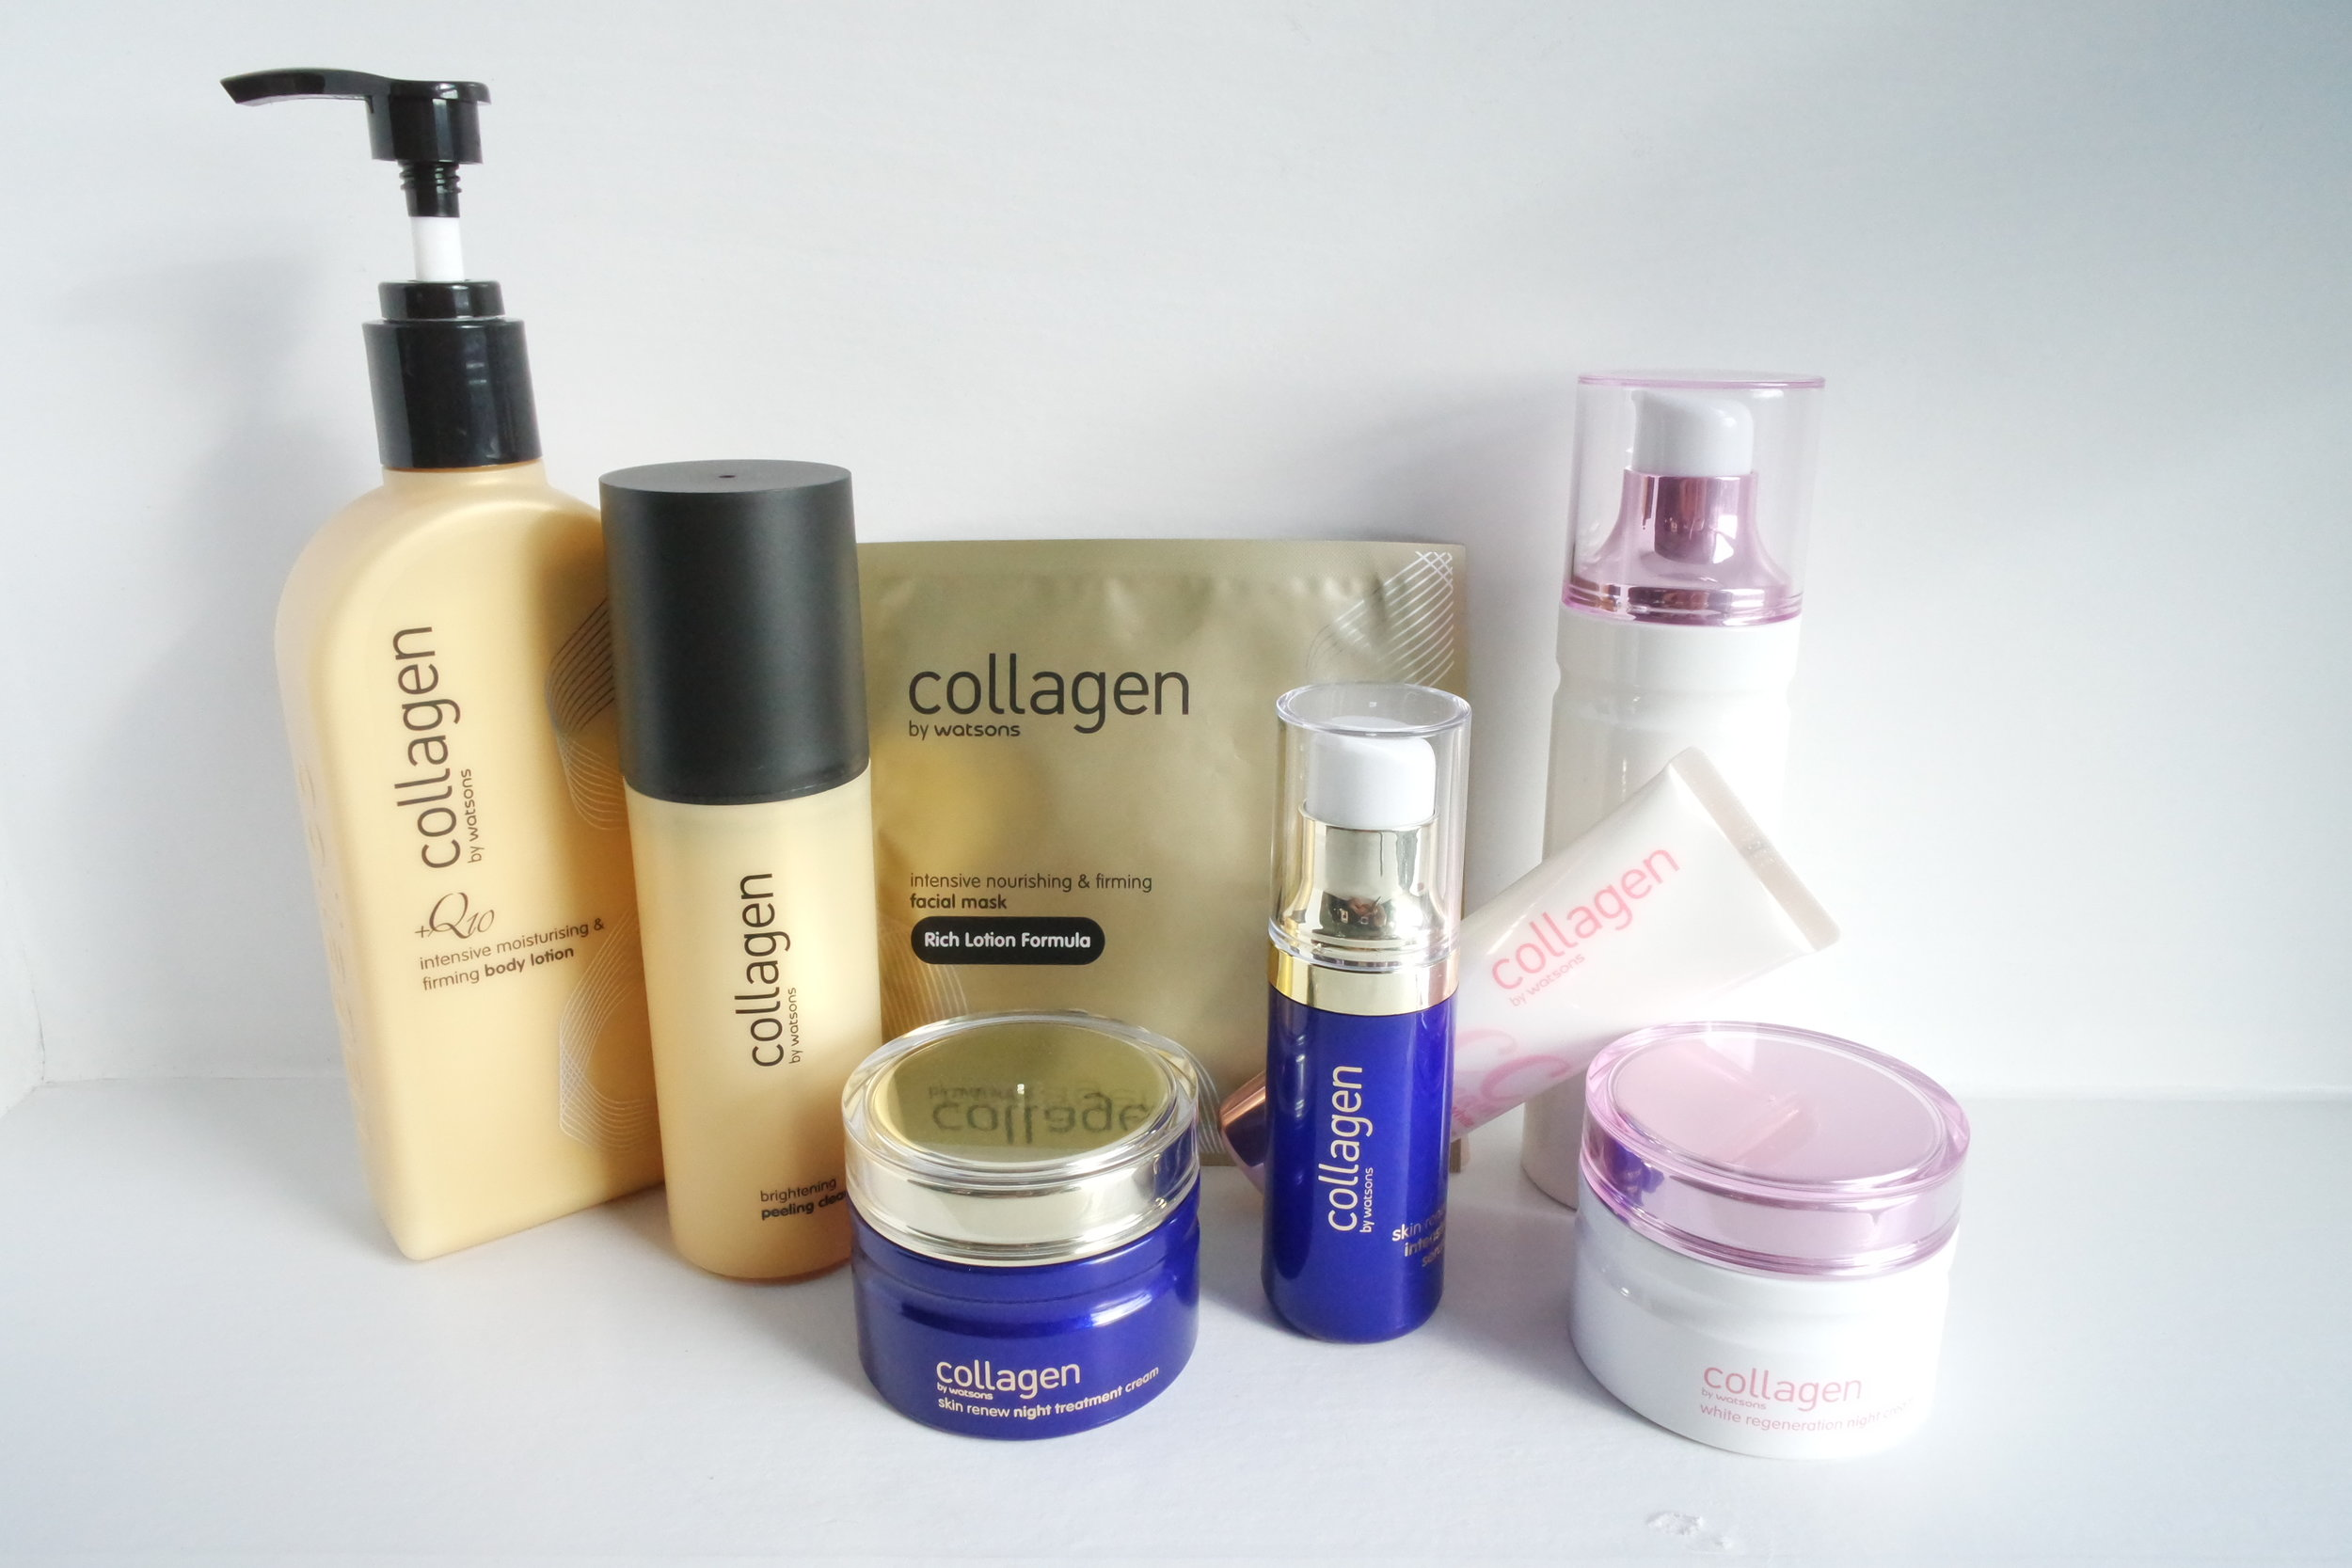 dc9b4d90d49 What you shouldn't miss from the new Collagen by Watsons line ...